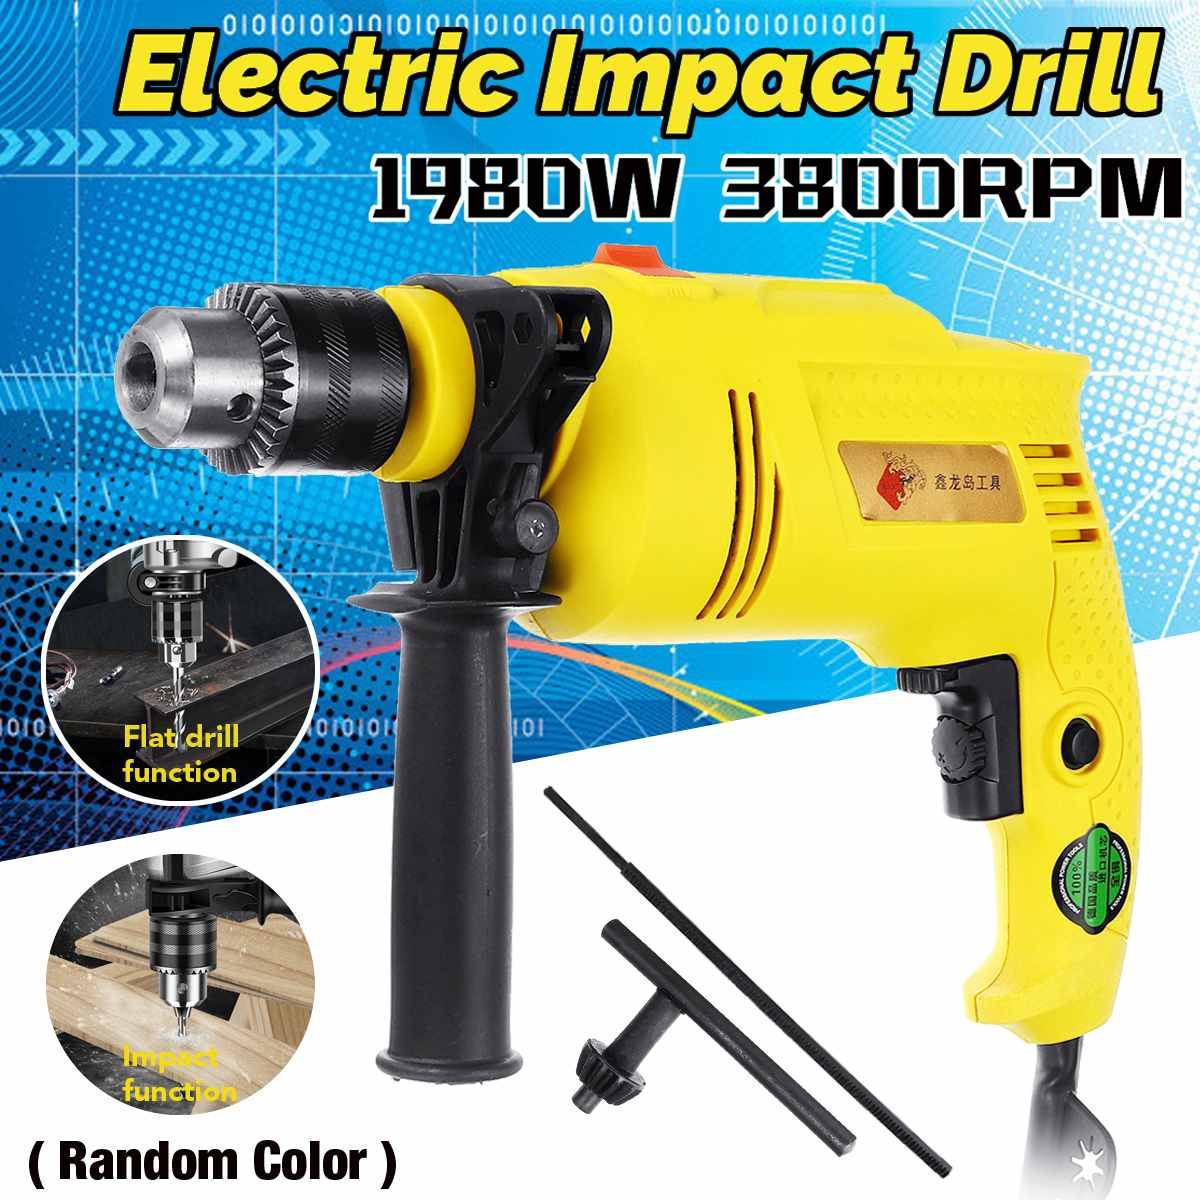 1980W Brushless Motor 13MM Electric Handheld Impact Drill Hammer Drill Impact Drill Multi-function Torque Driver Tool